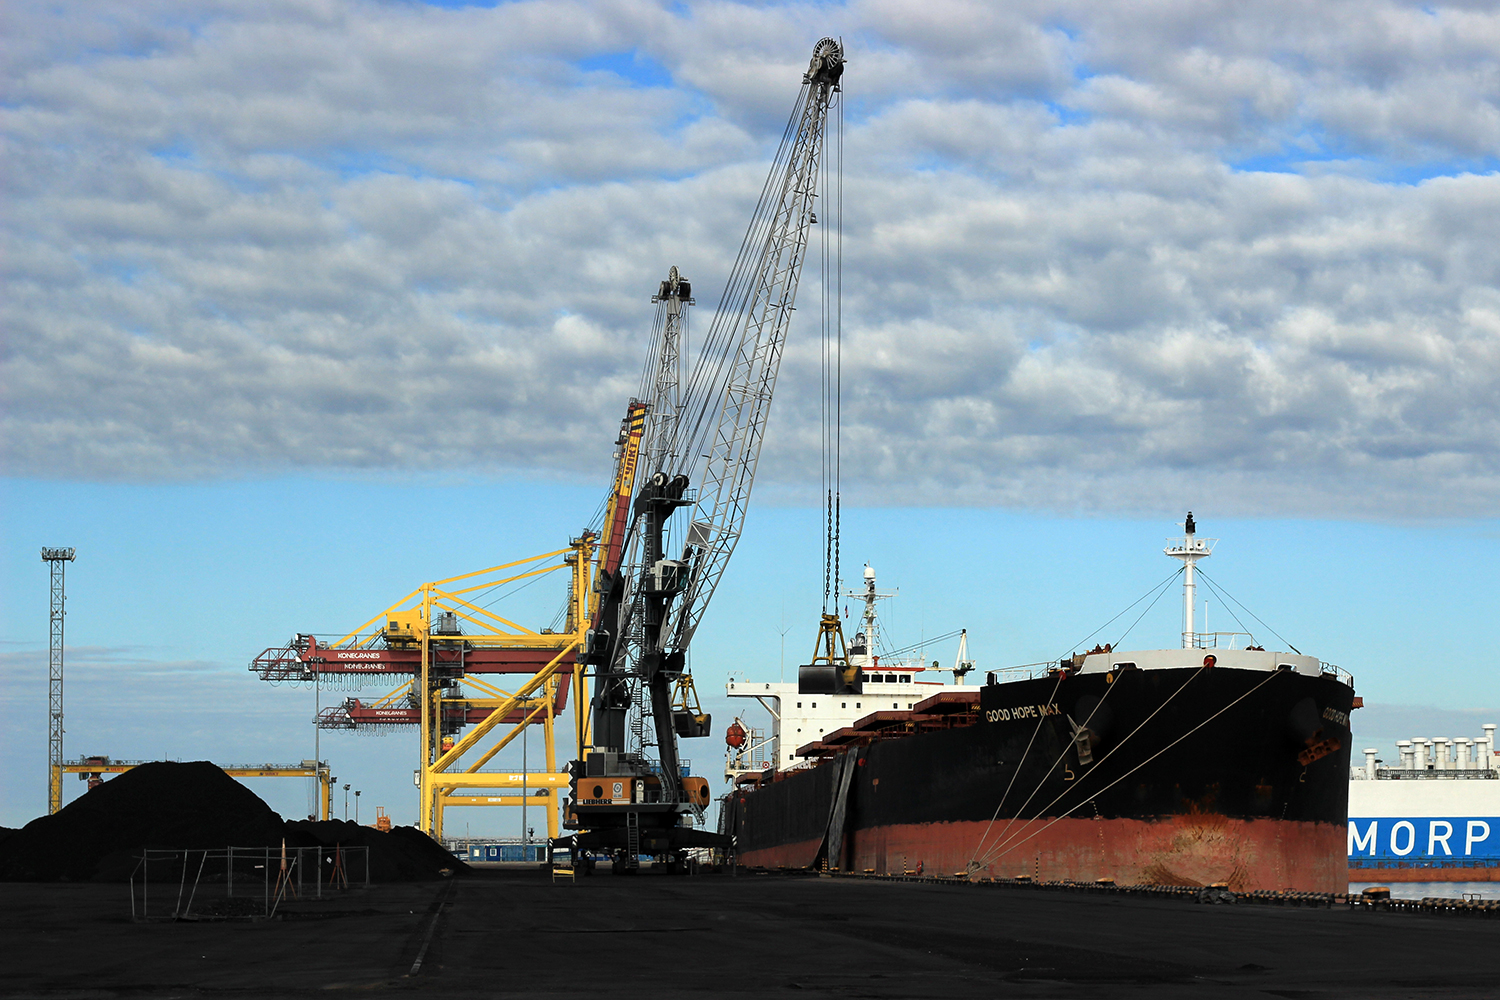 Ust-Luga Sea Commercial Port in Russian Baltic